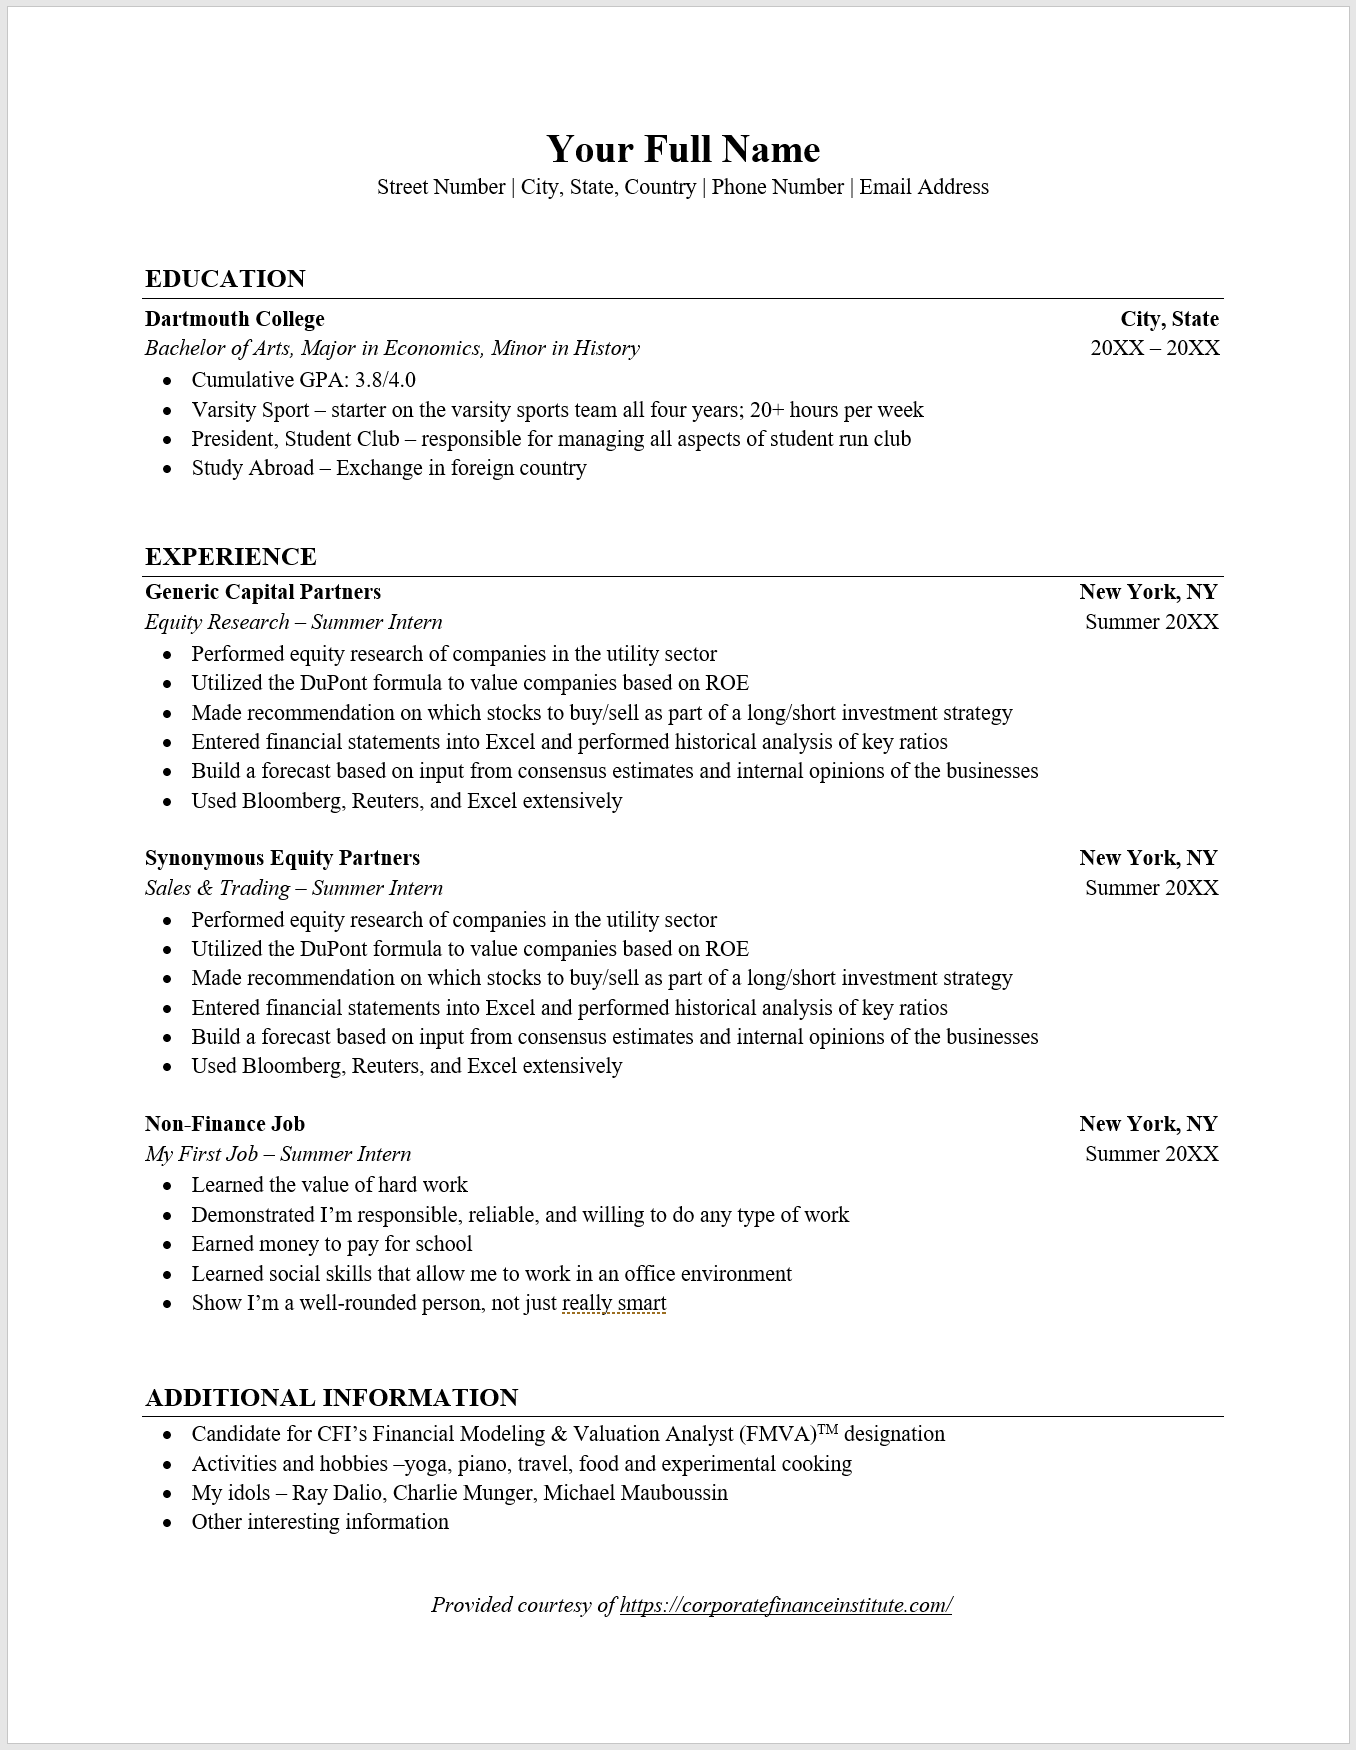 investment banking resume font size